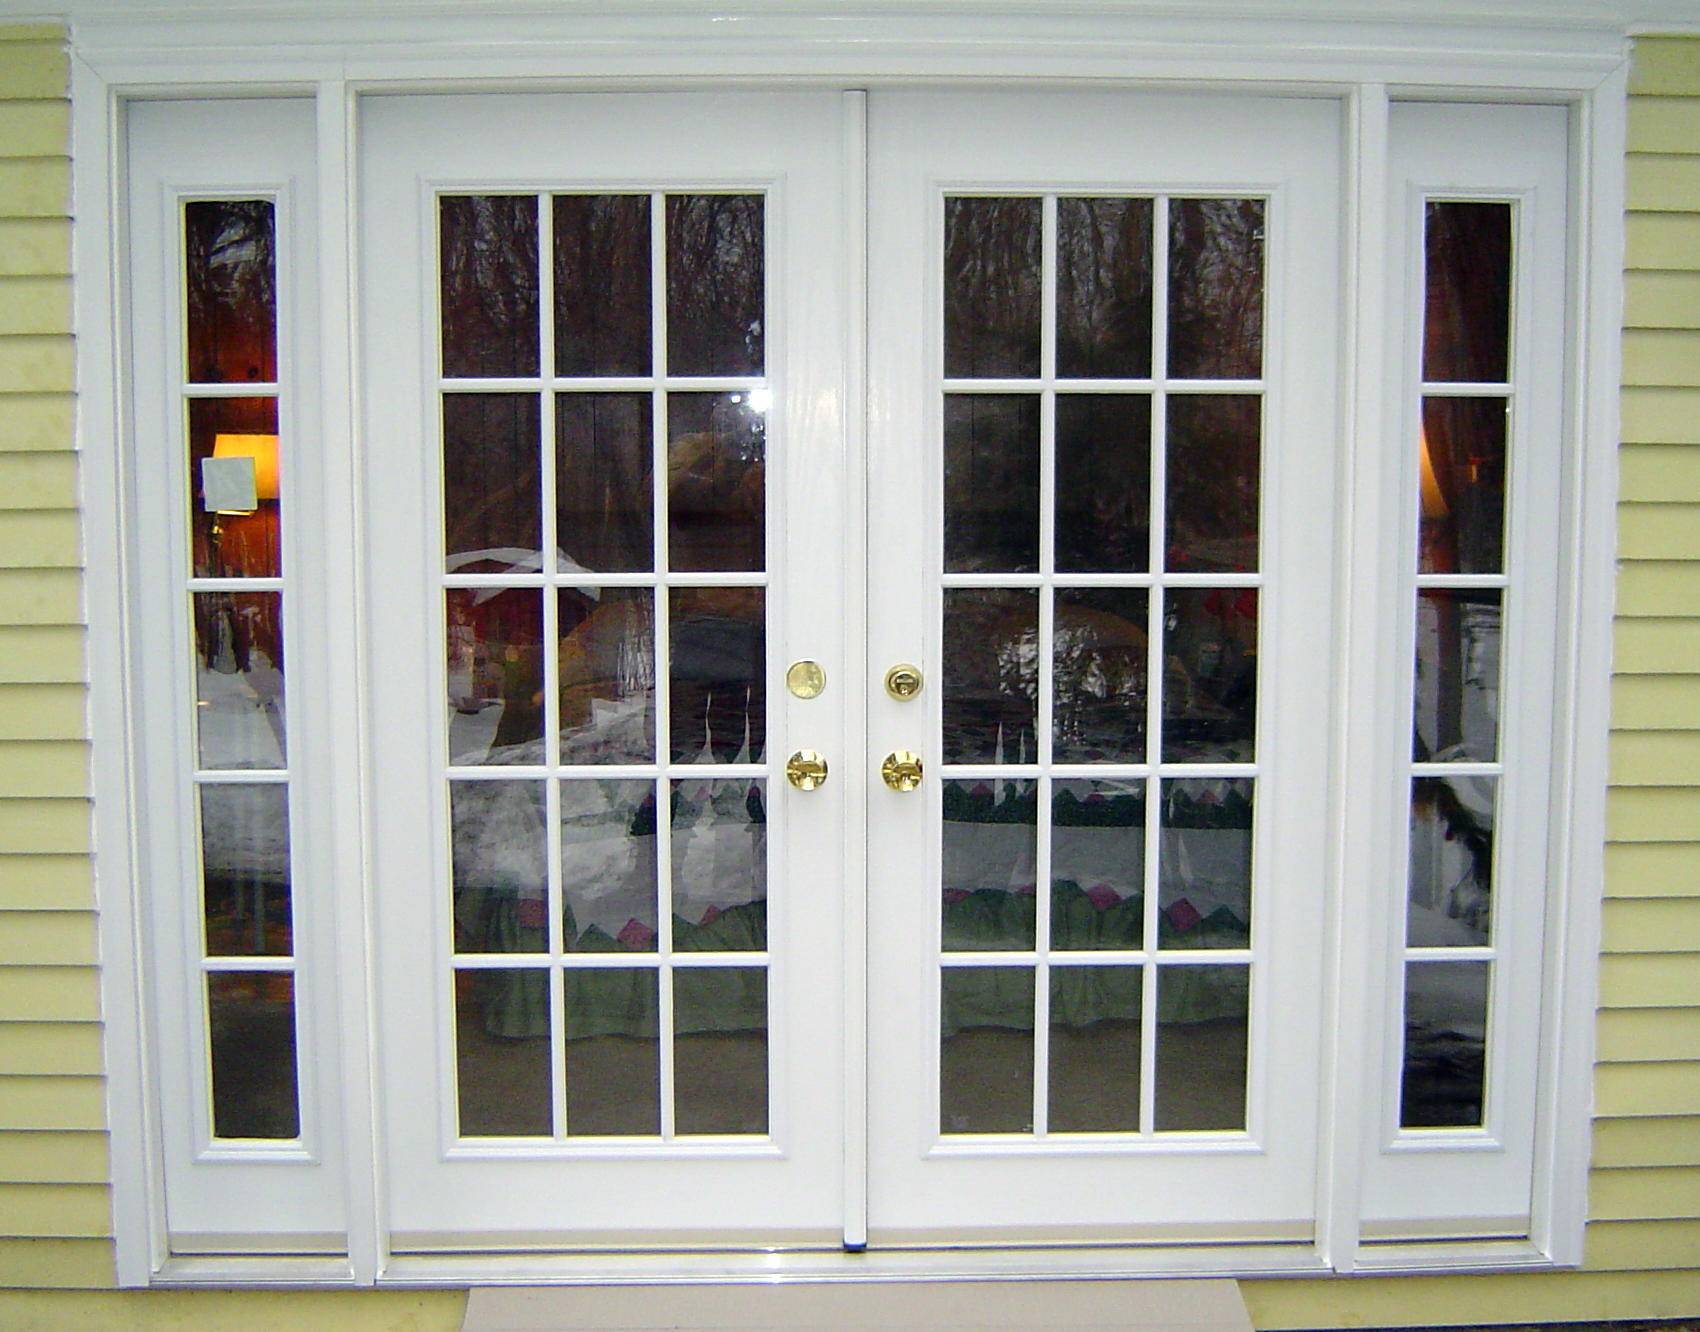 1332 #643C2D FIBERGLASS ENTRY DOORS AND FRENCH DOORS pic Fiberglass Entry Doors With Glass 38611700